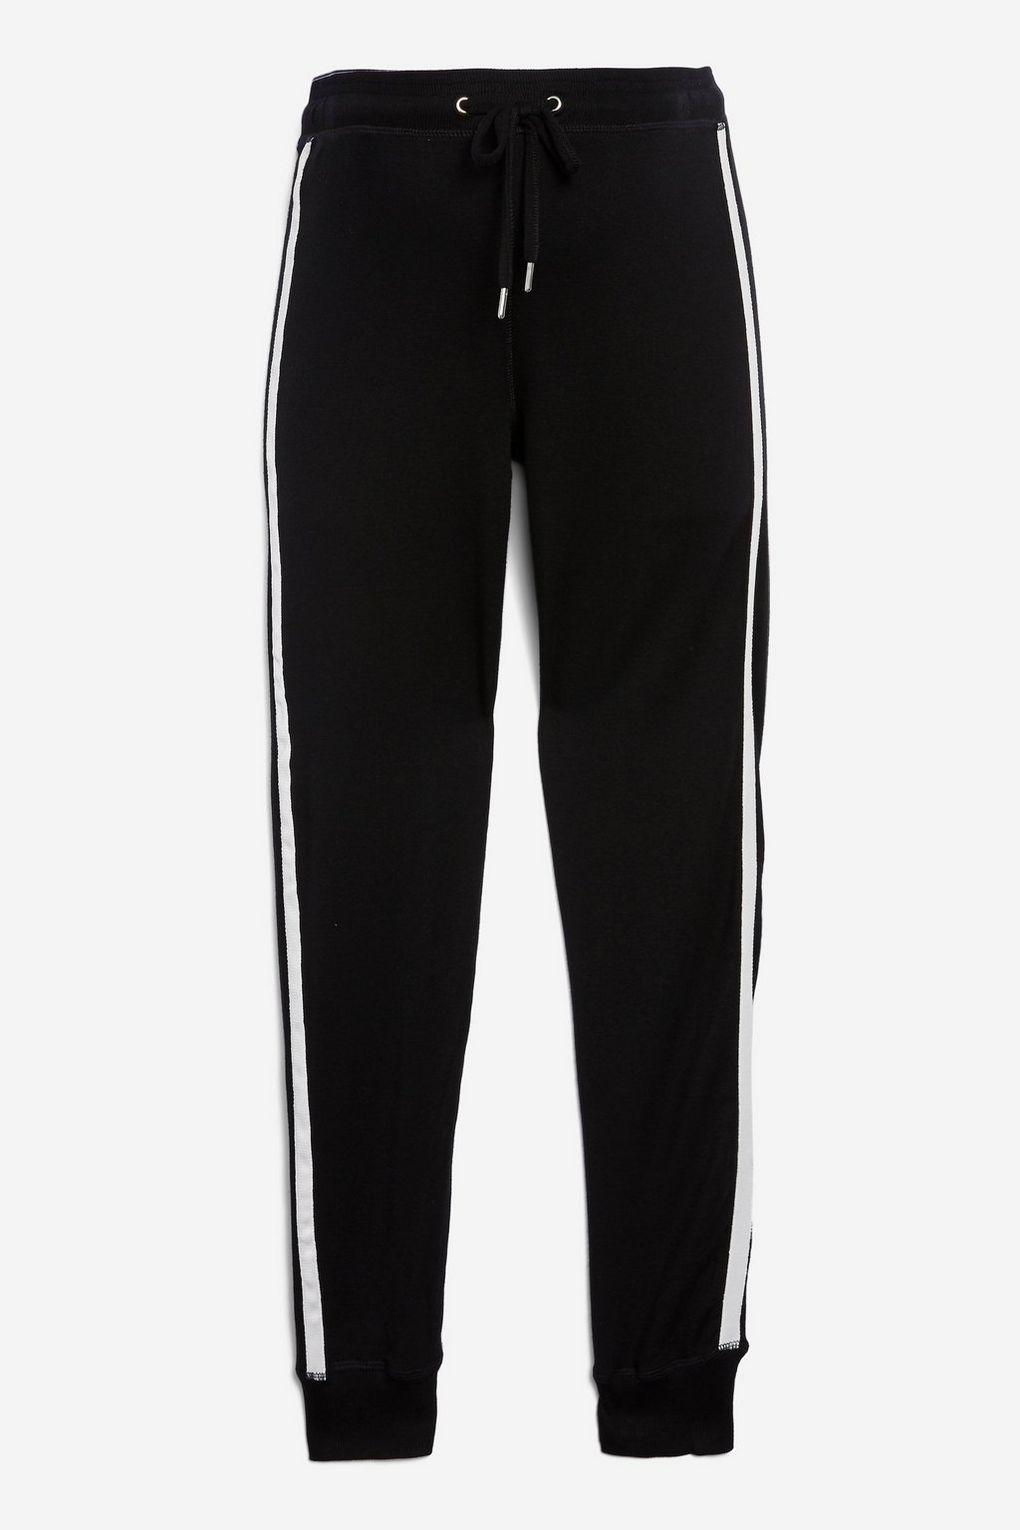 5179e26929bd3 TOPSHOP Maternity Side Striped Joggers in Black - Lyst